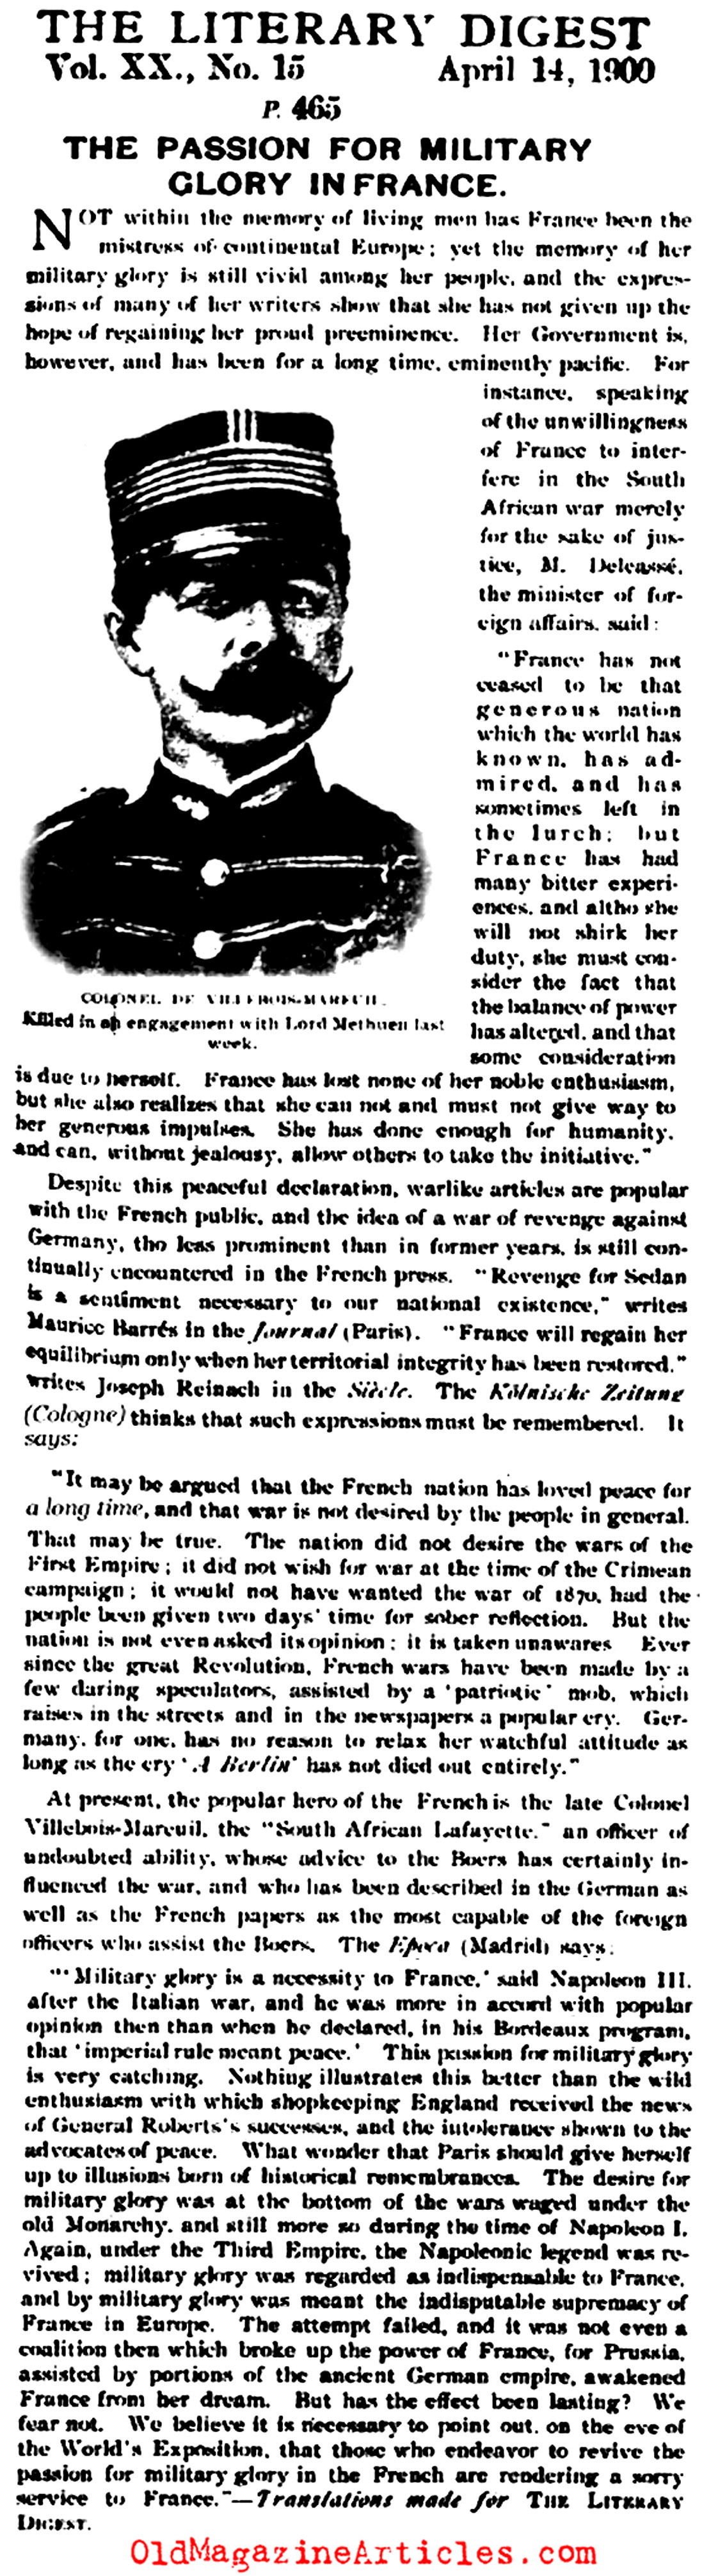 The Need for French Military Glory (Literary Digest, 1900)